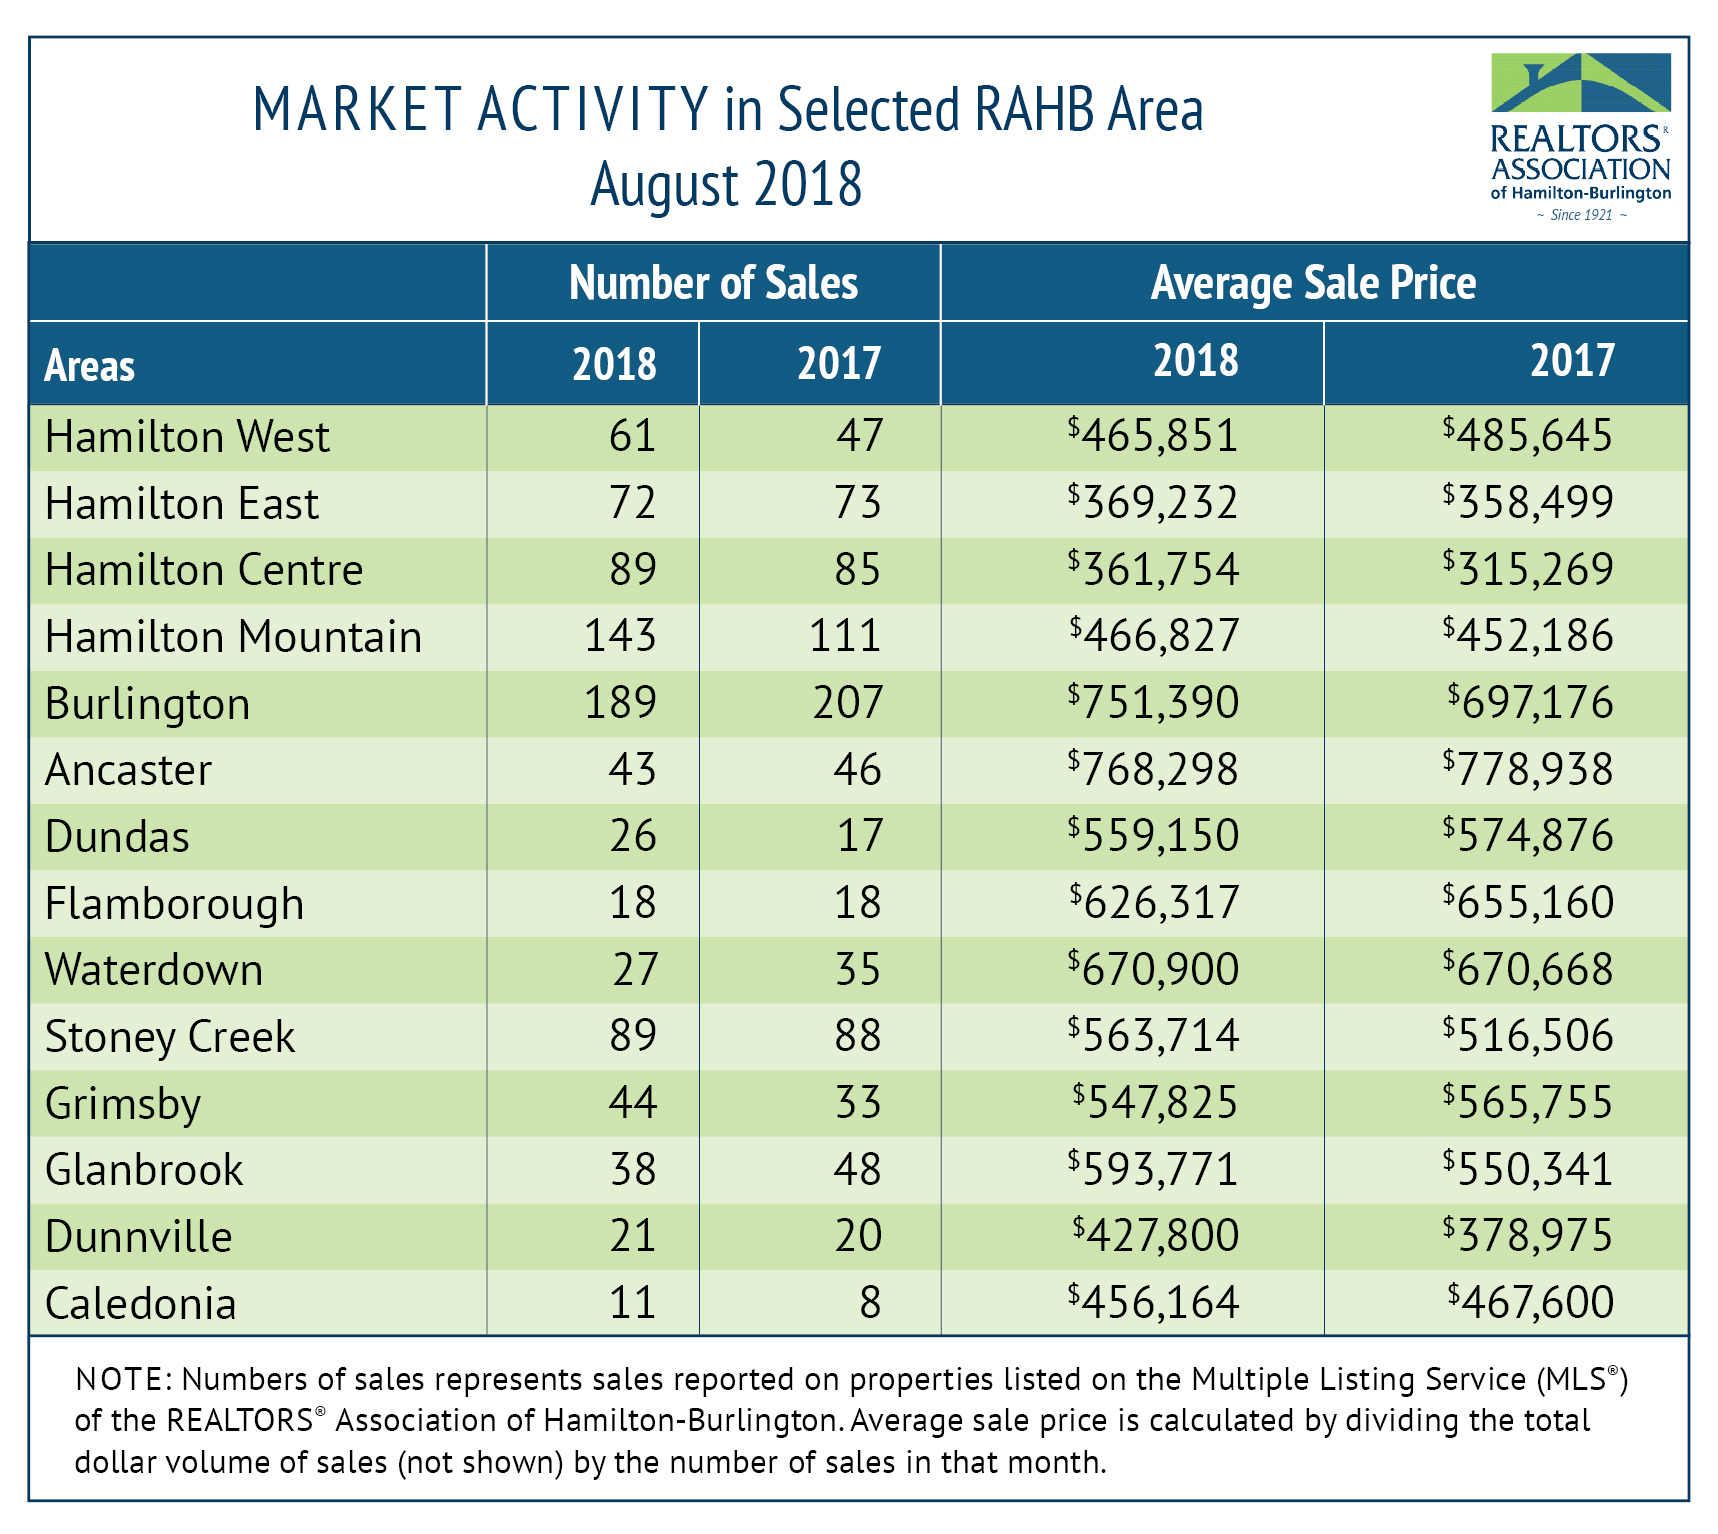 RAHB Marketing Activity Chart Aug 2018